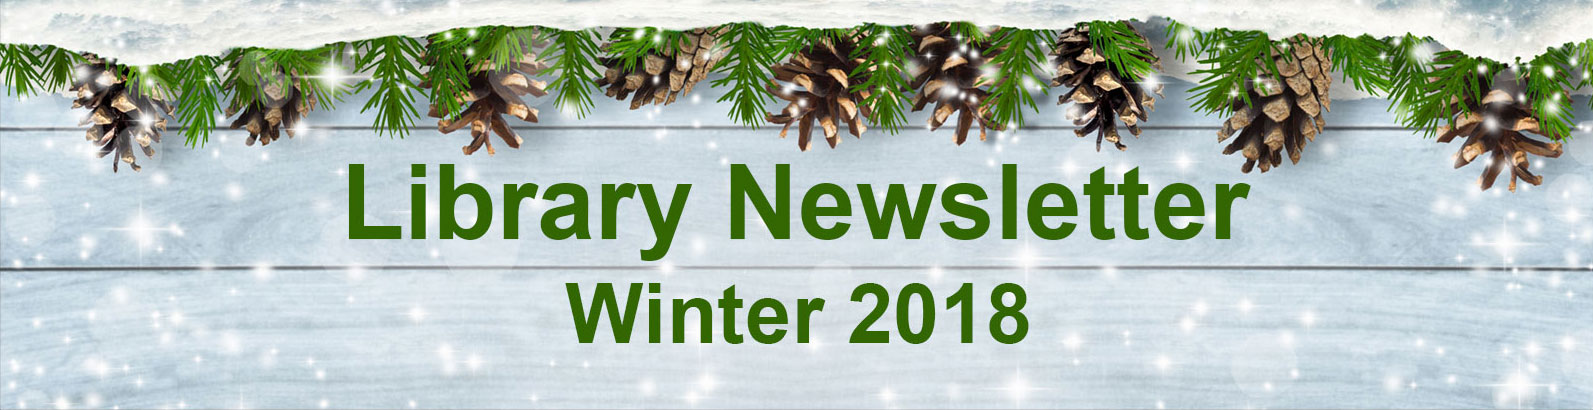 2018 Winter Newsletter banner